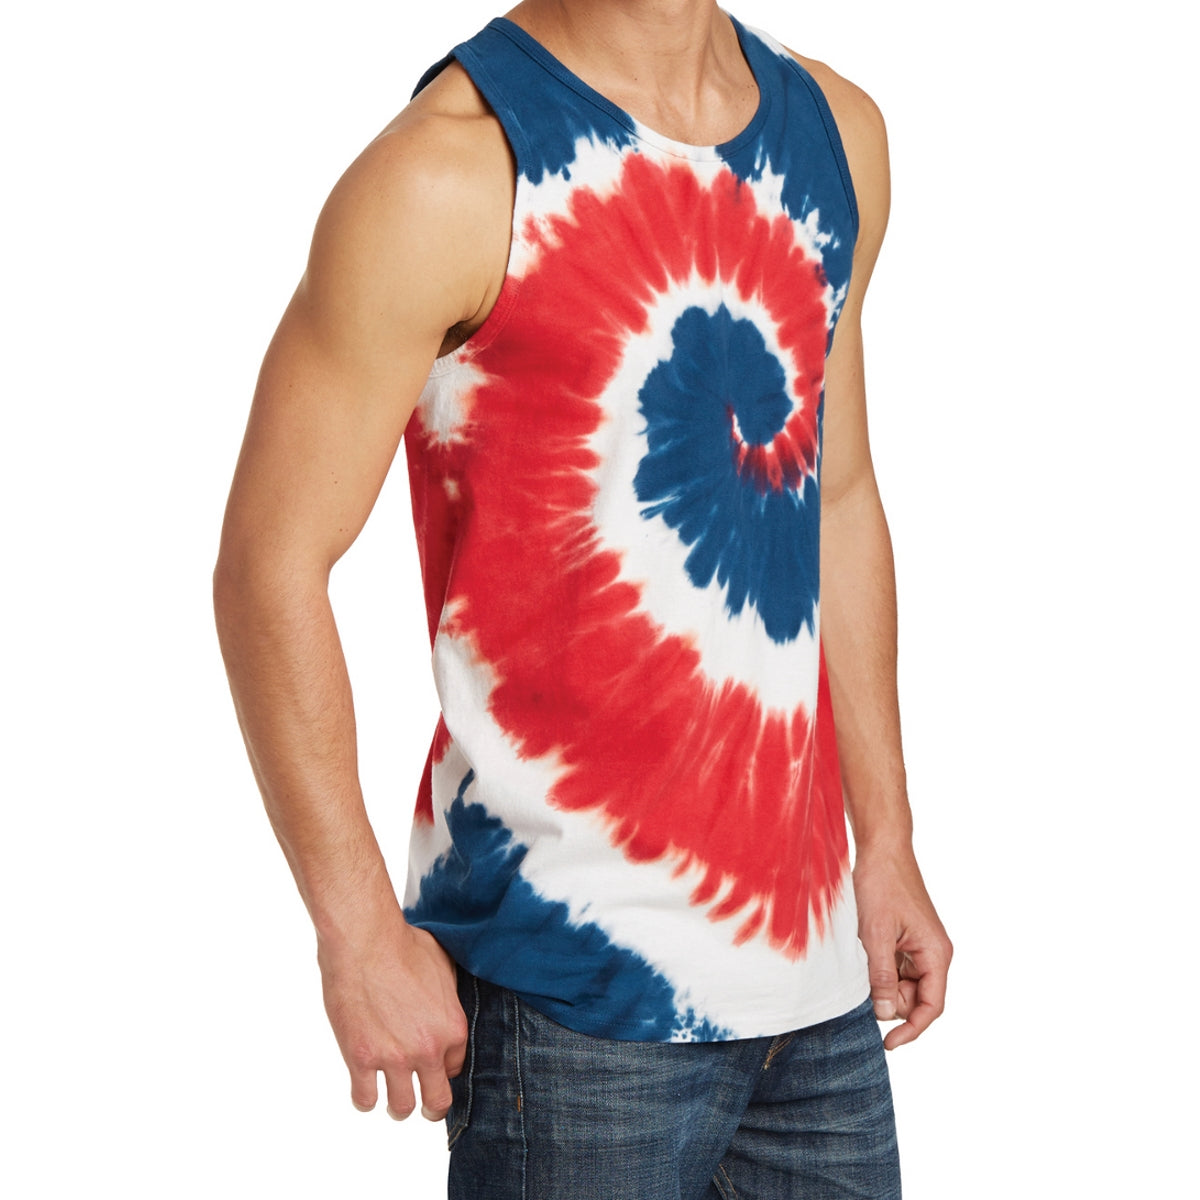 Men's Tie-Dye Tank Top - USA Rainbow